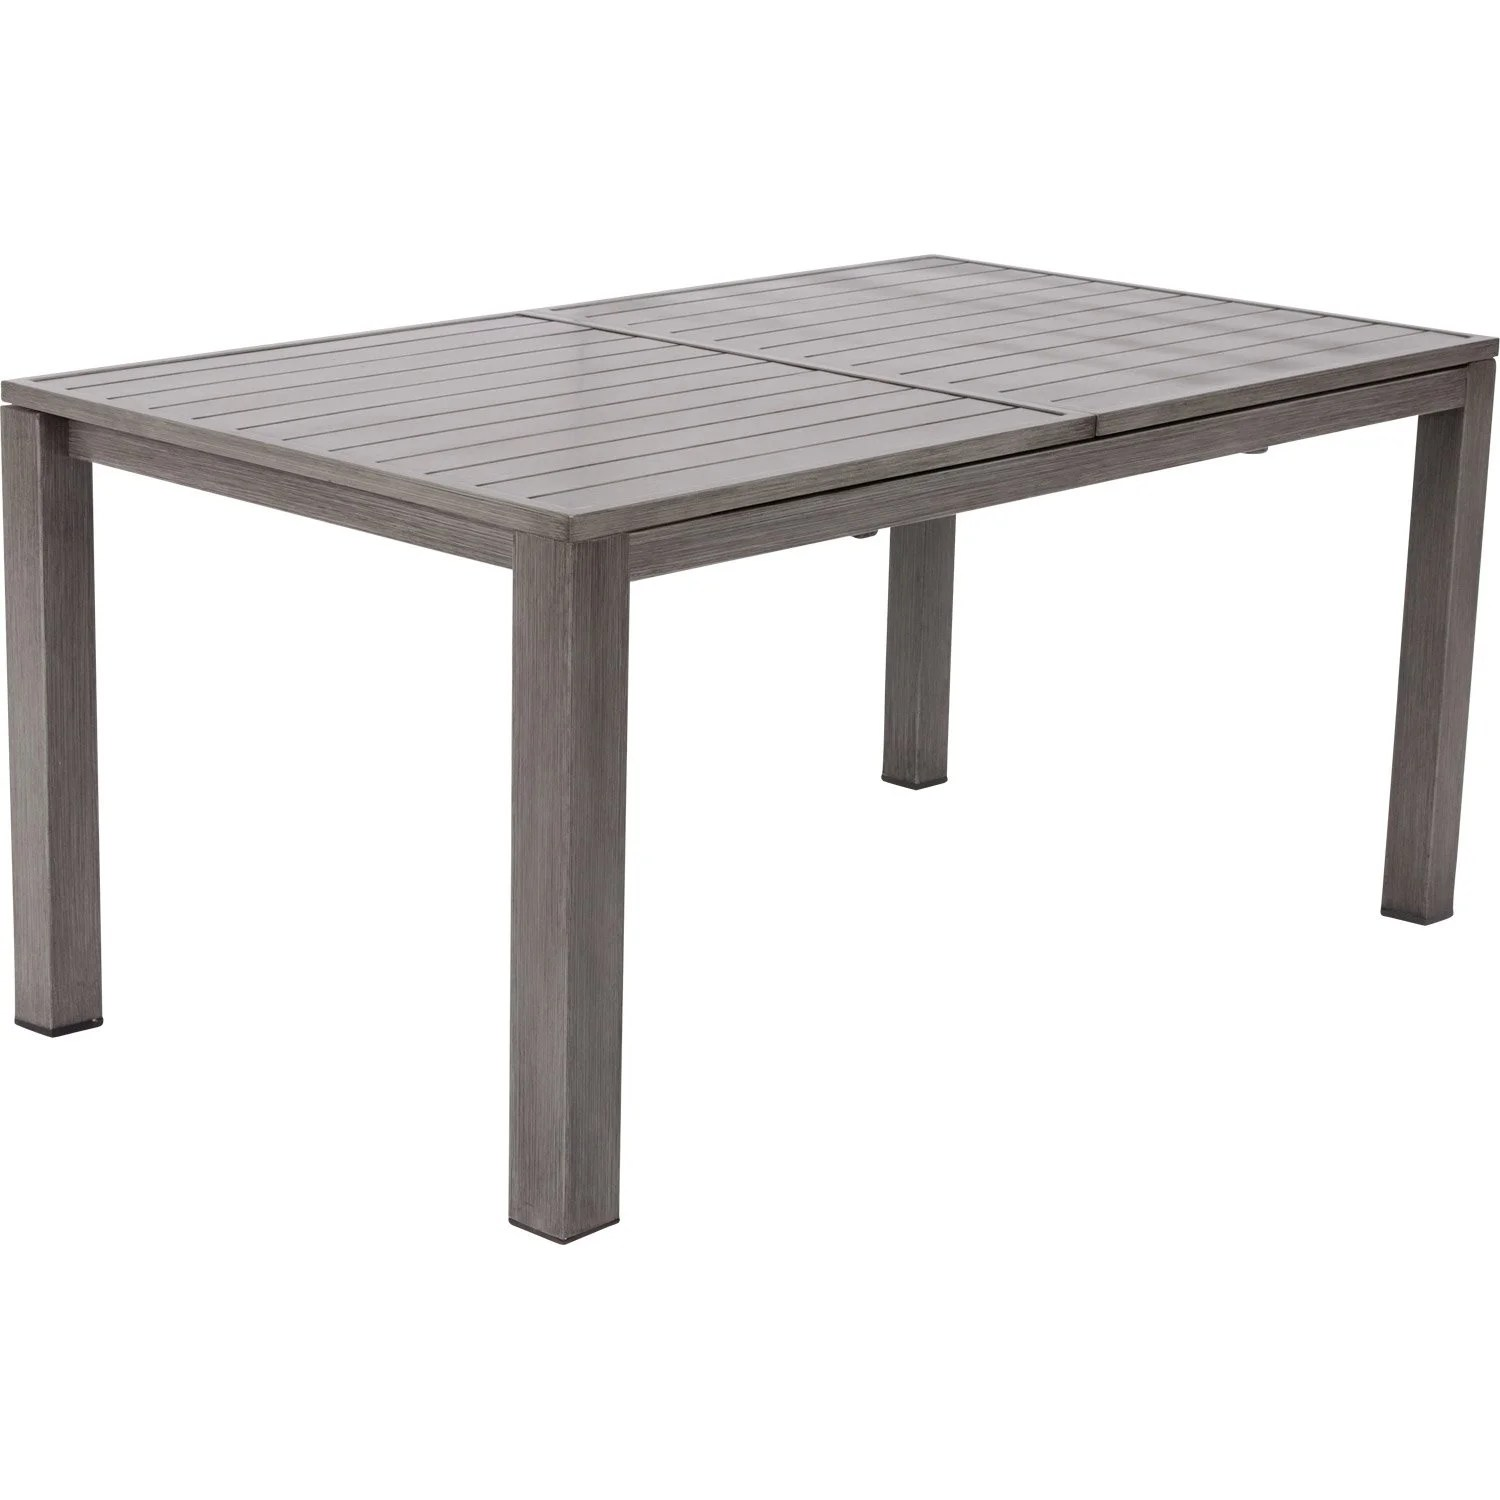 Table de jardin NATERIAL Antibes rectangulaire gris look bois 68 personnes  Leroy Merlin